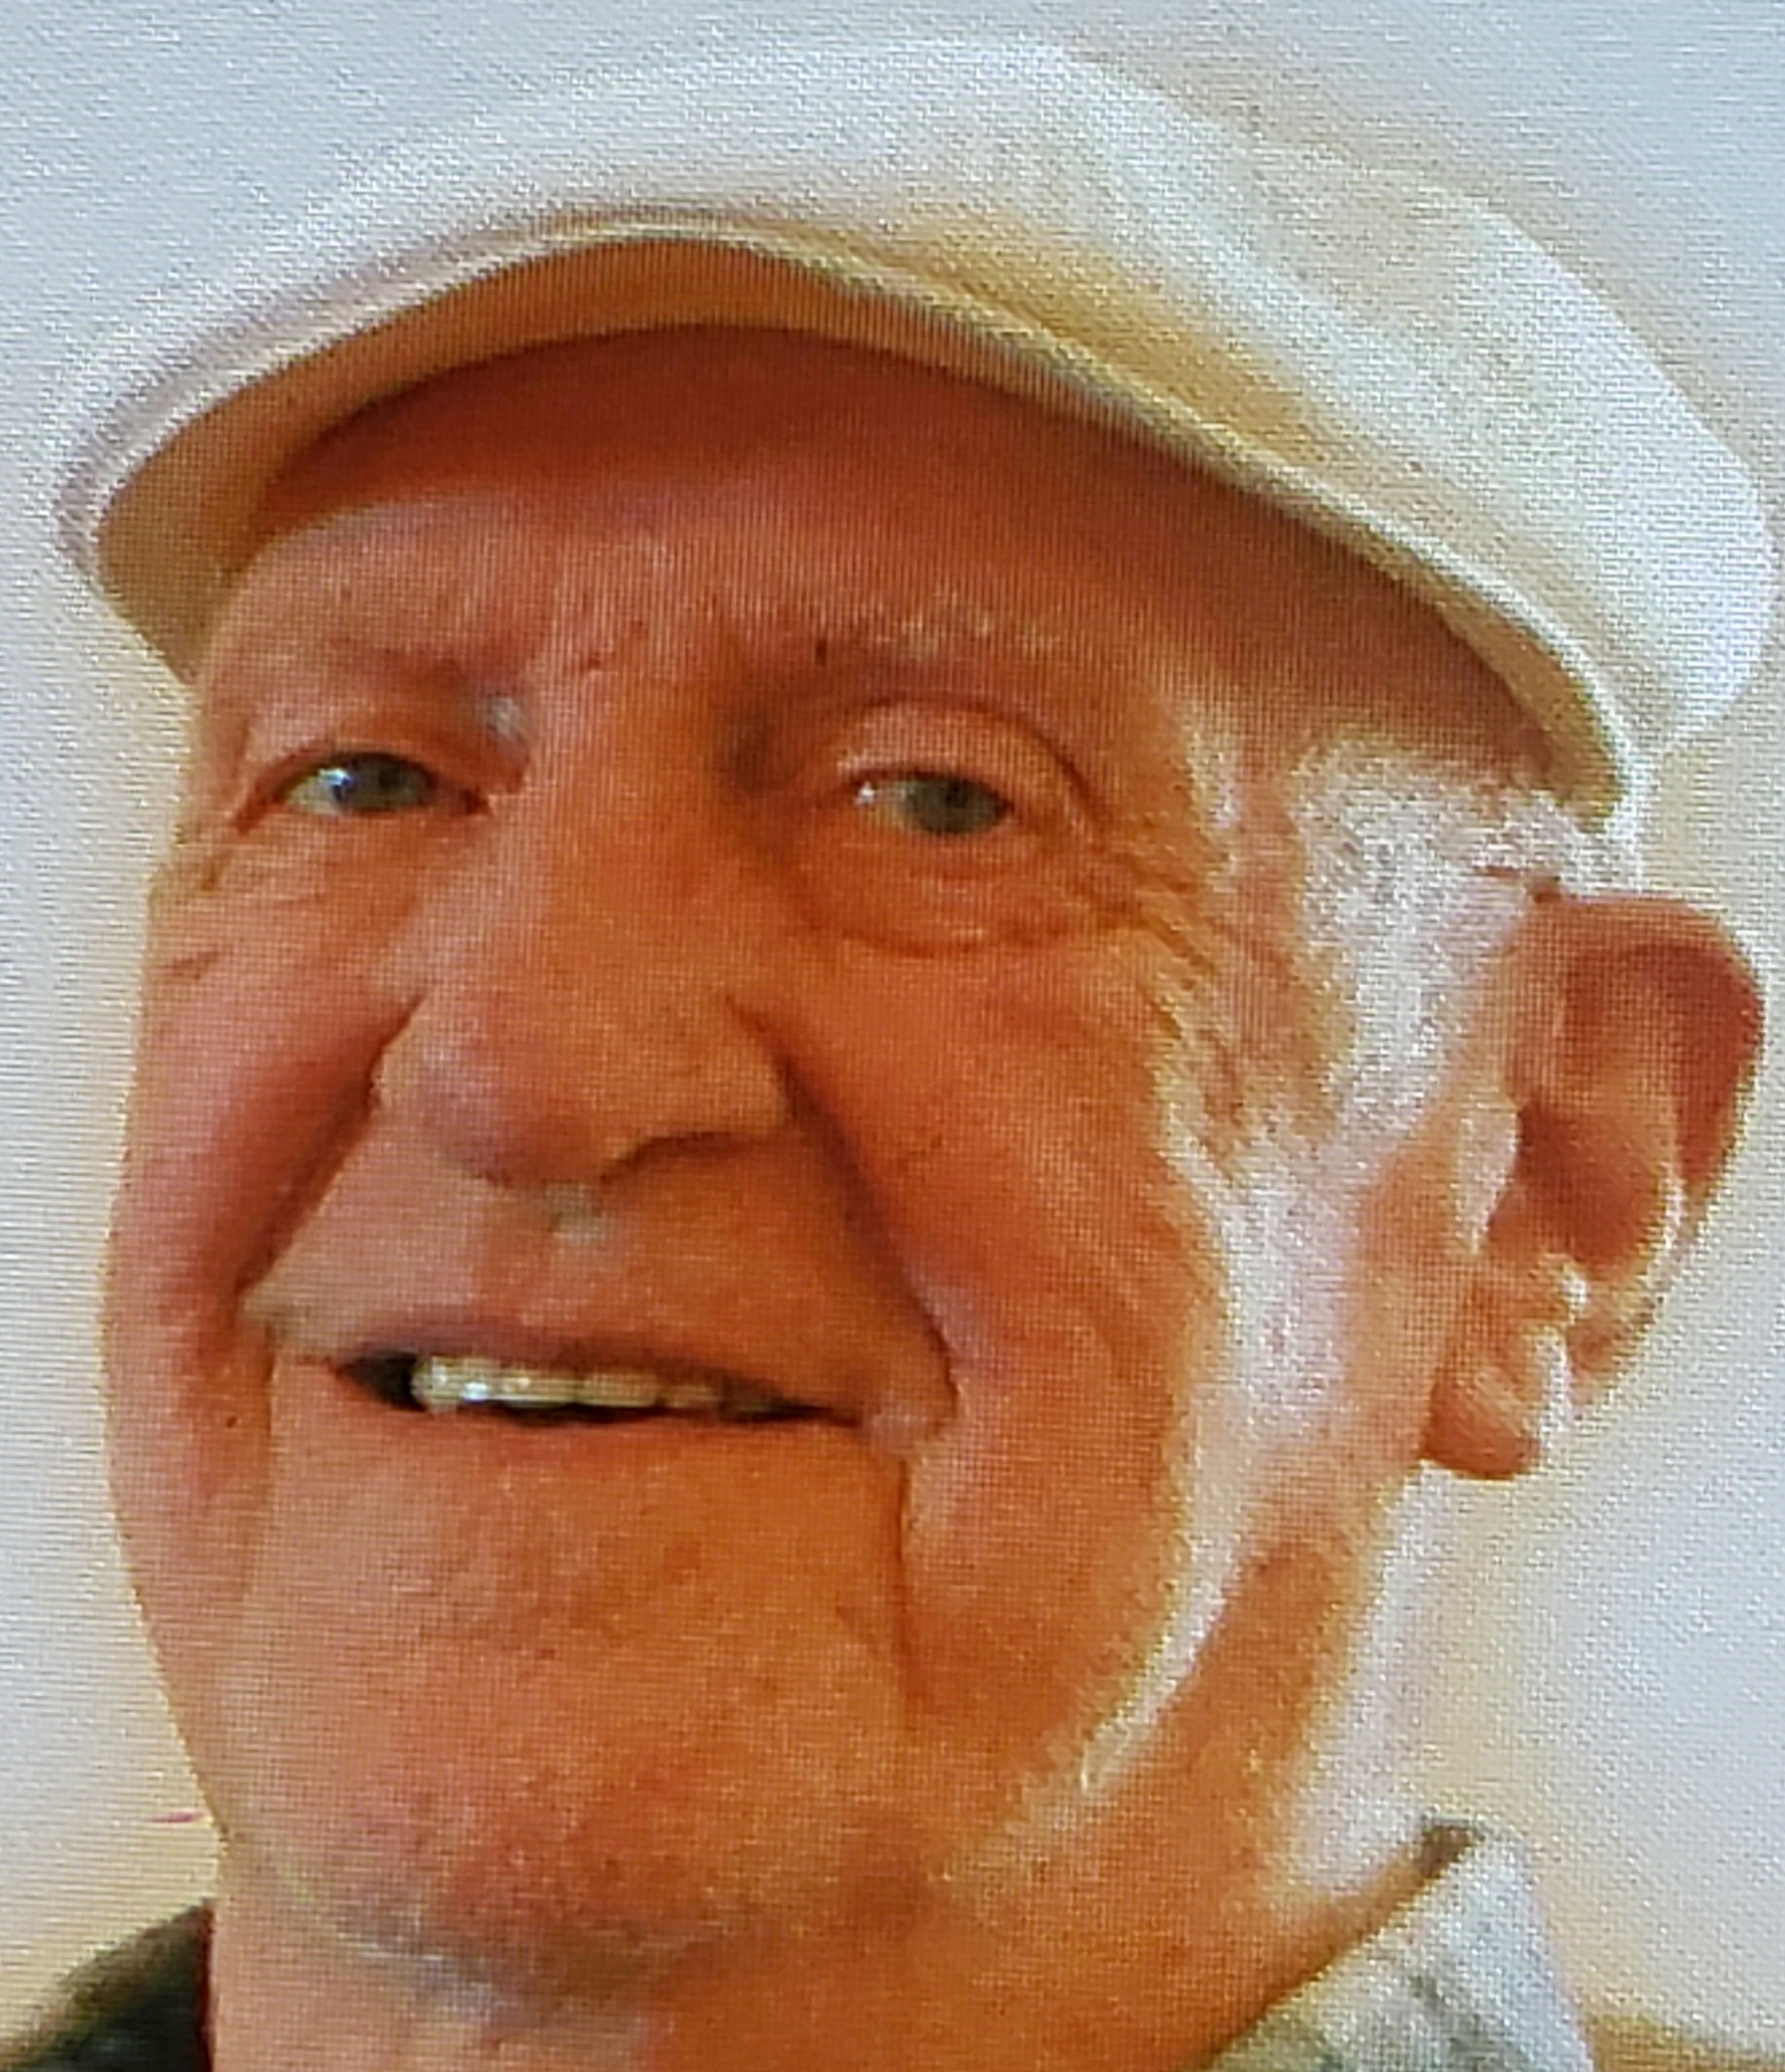 Franklin T. (Ted) Boom, age 84 of Elwood